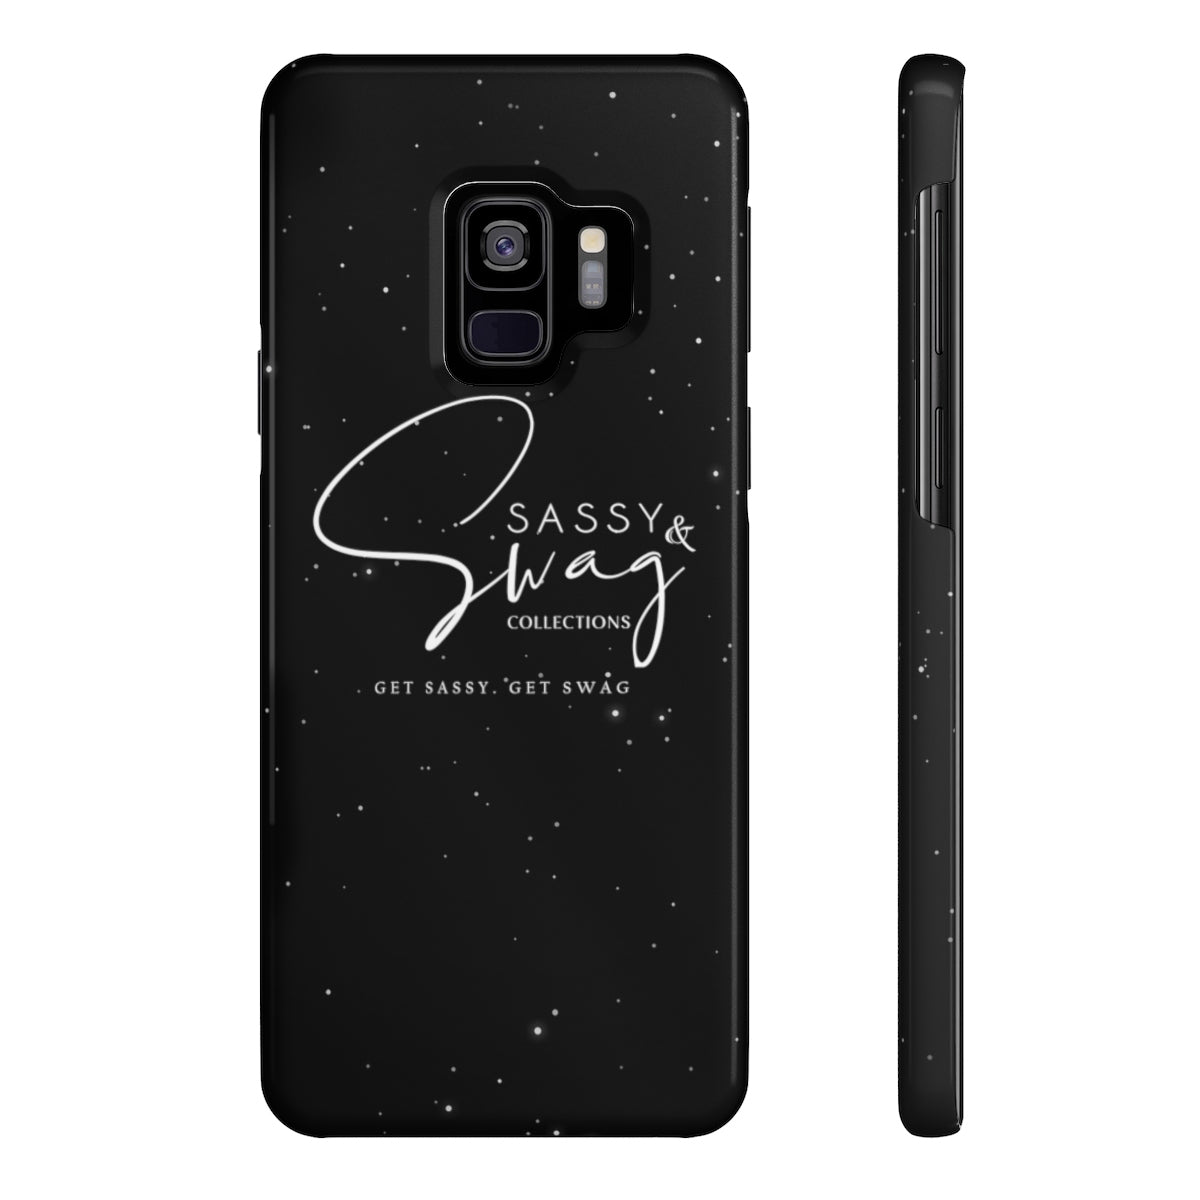 Sassy & Swag Collections Stars Case Mate Slim Phone Cases